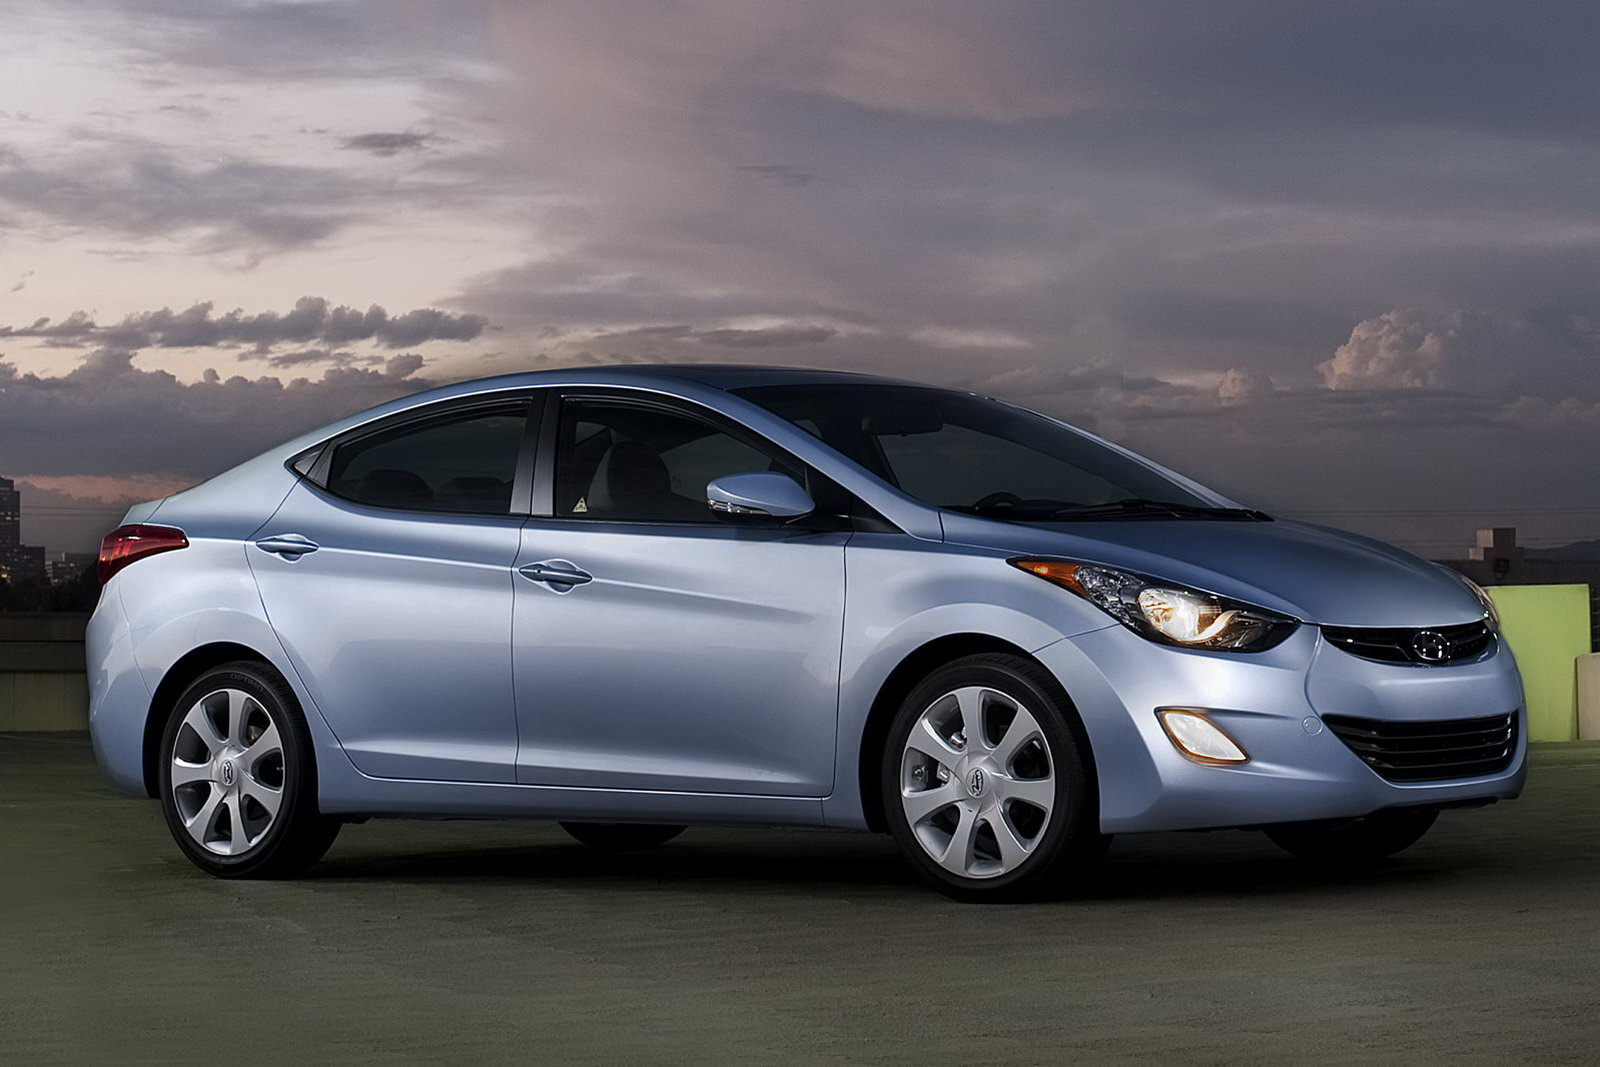 2011 Hyundai Elantra Starts At Under 15 000 Autoevolution